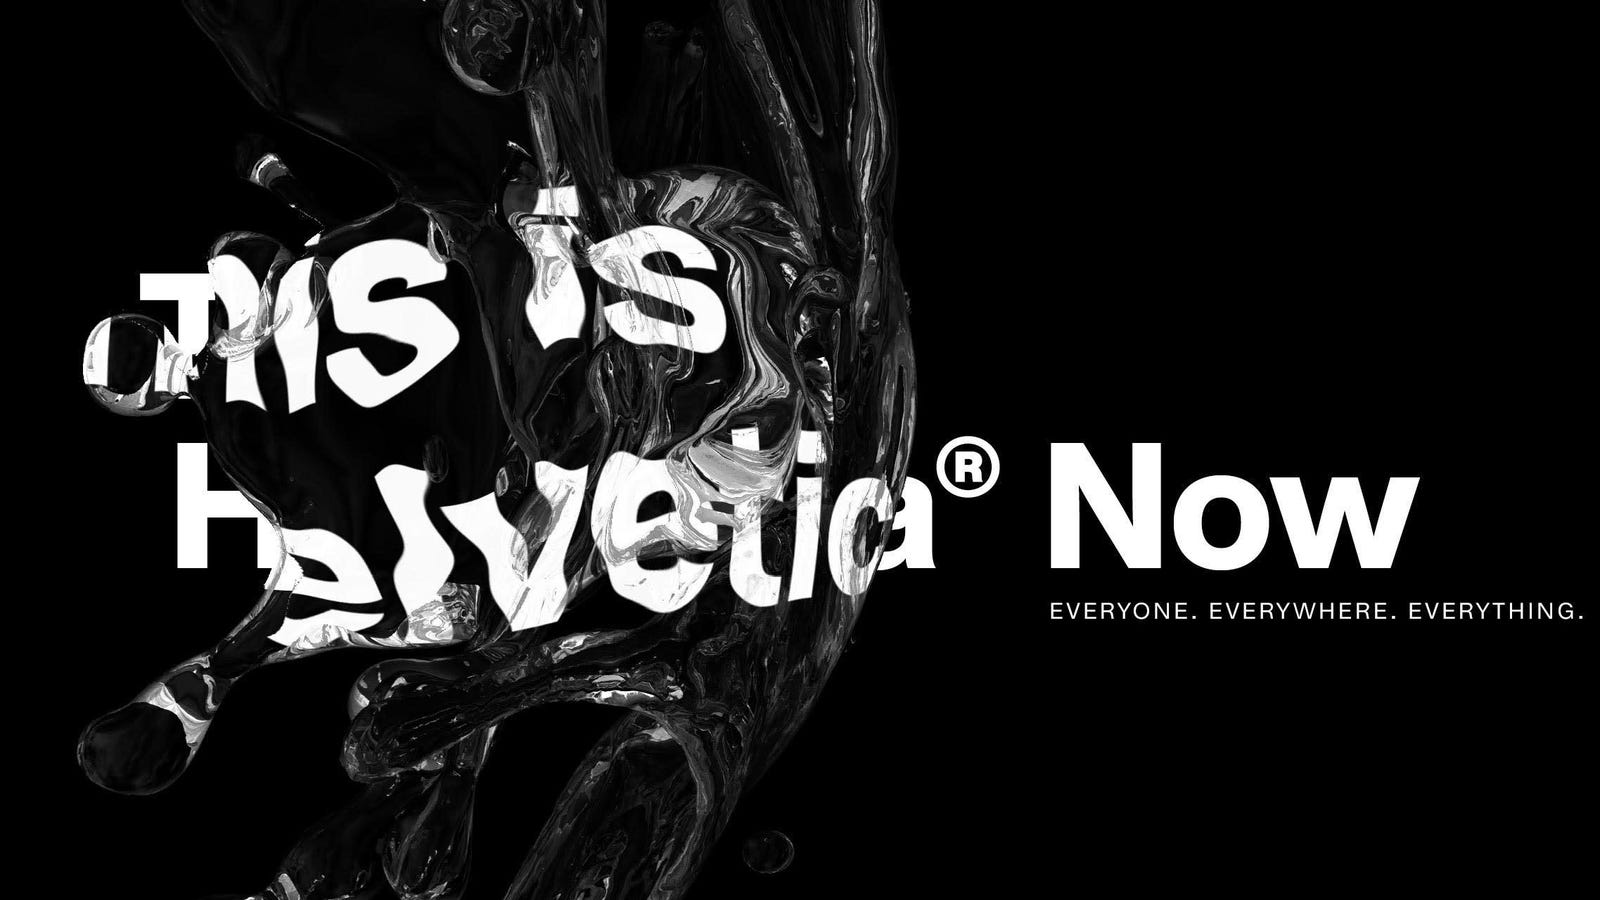 After 36 Years, Helvetica Gets a Much-Needed Facelift